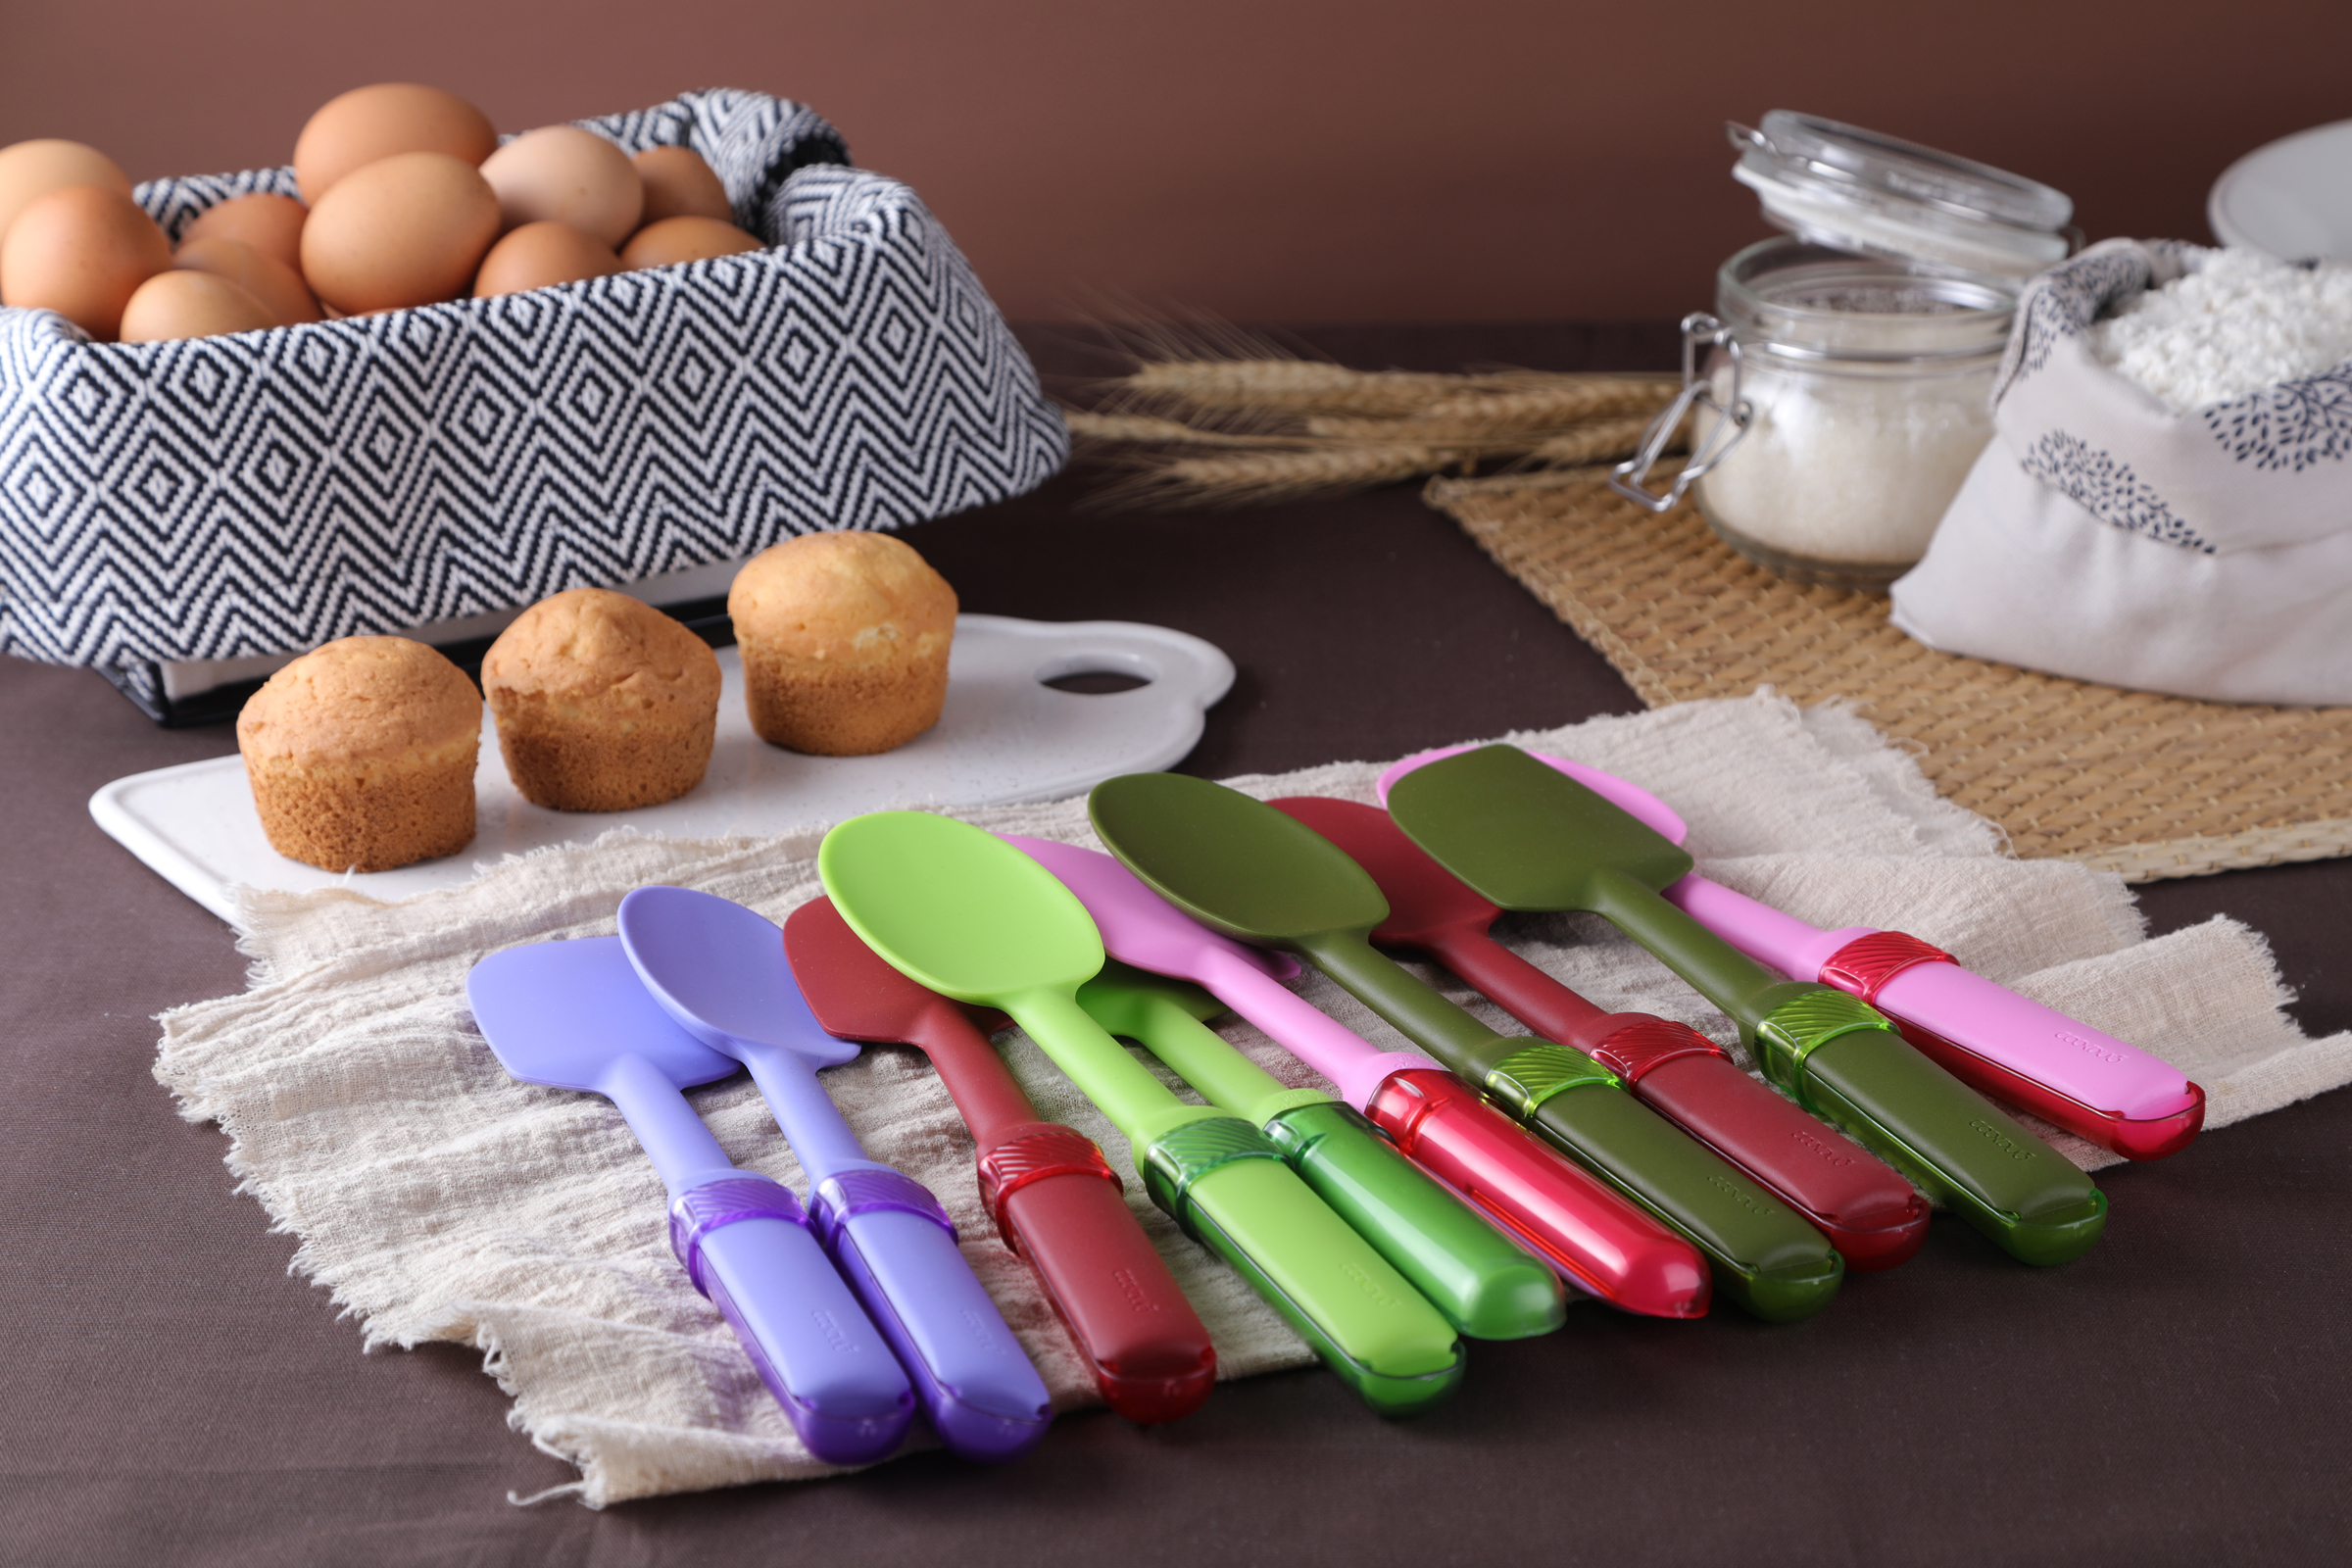 Mix & Measure - Silicone tools with adjustable measuring spoon